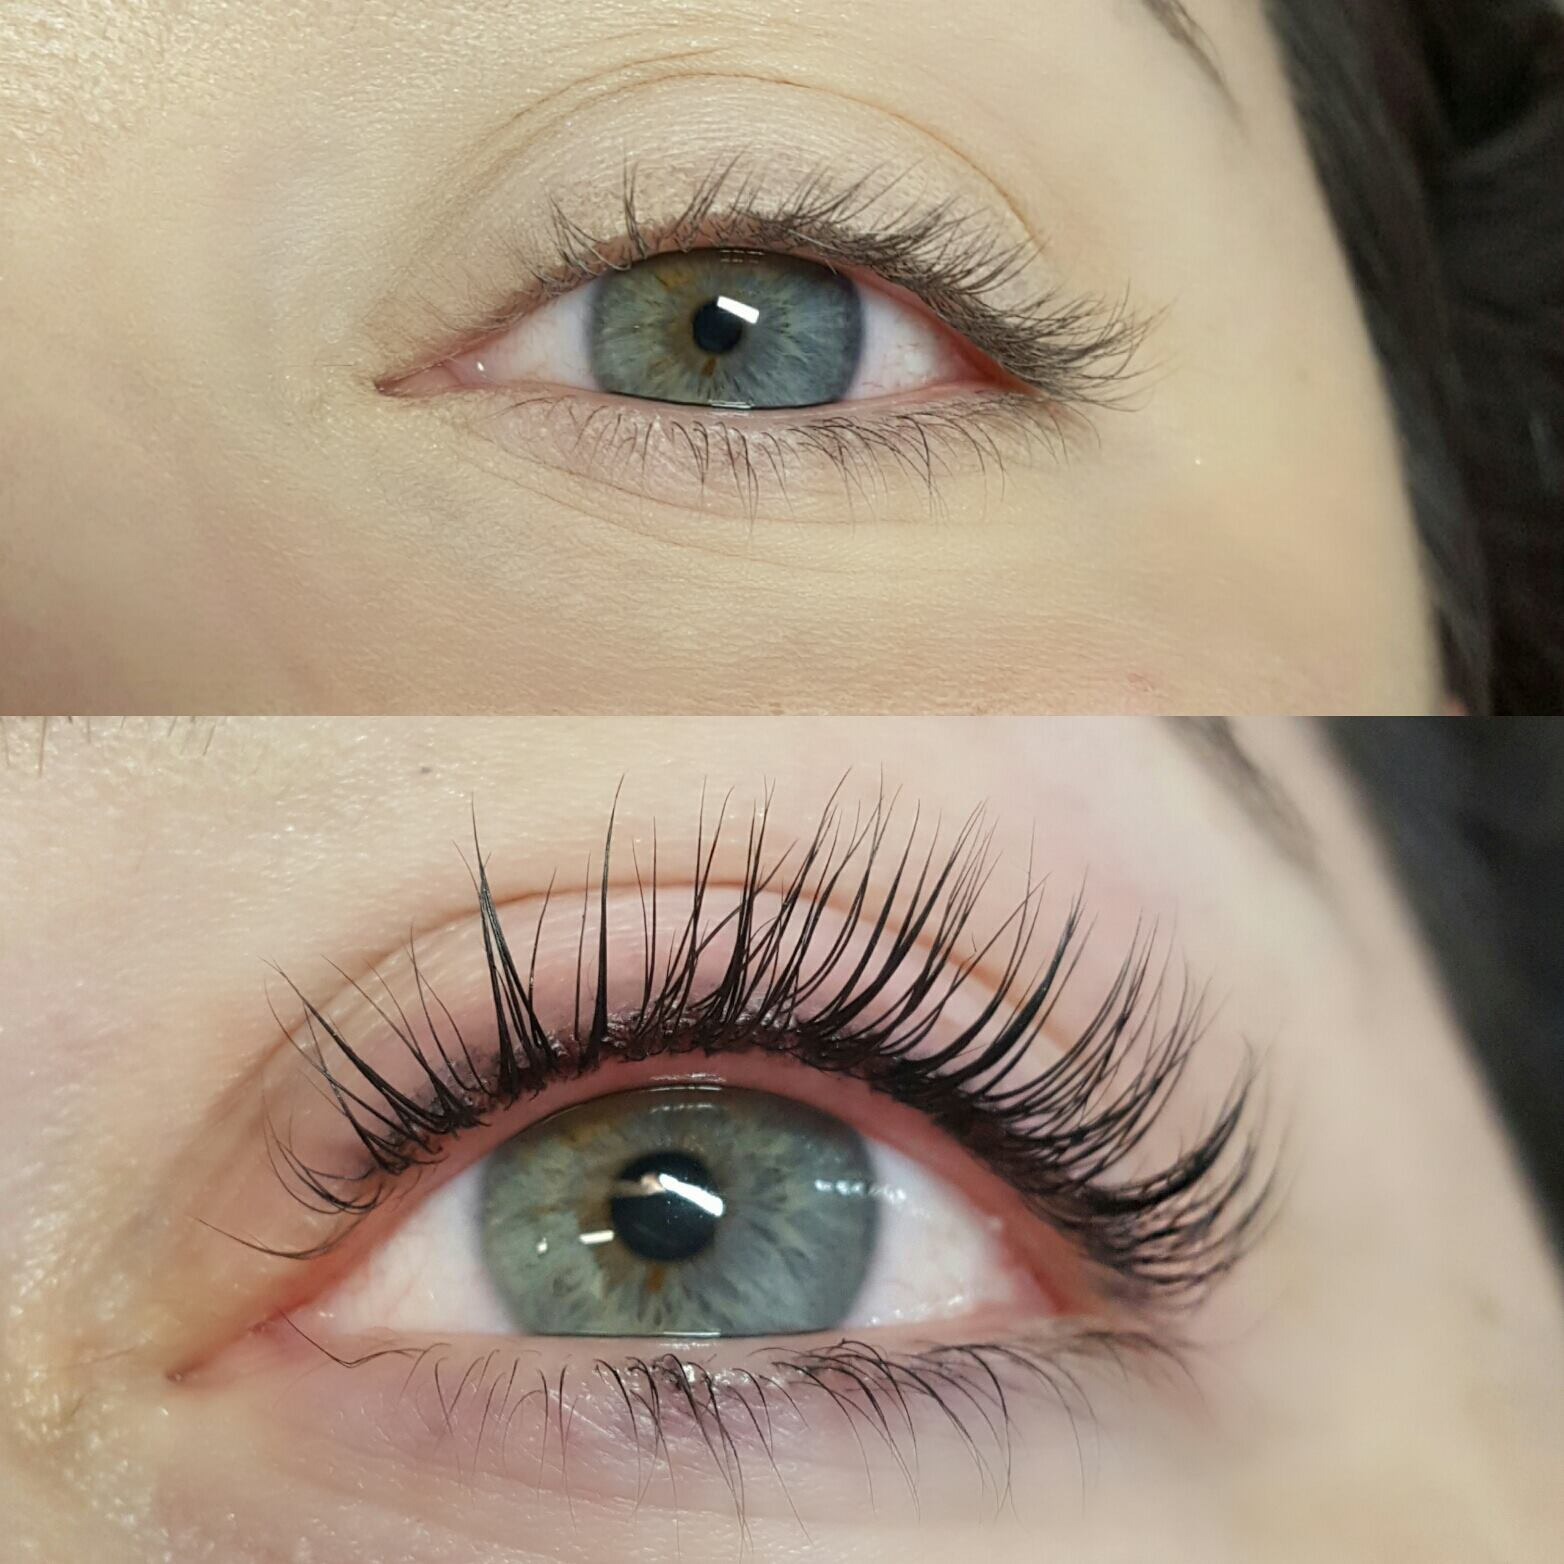 Keratin Lash Lift And Tint Questions Wake Up For Makeup